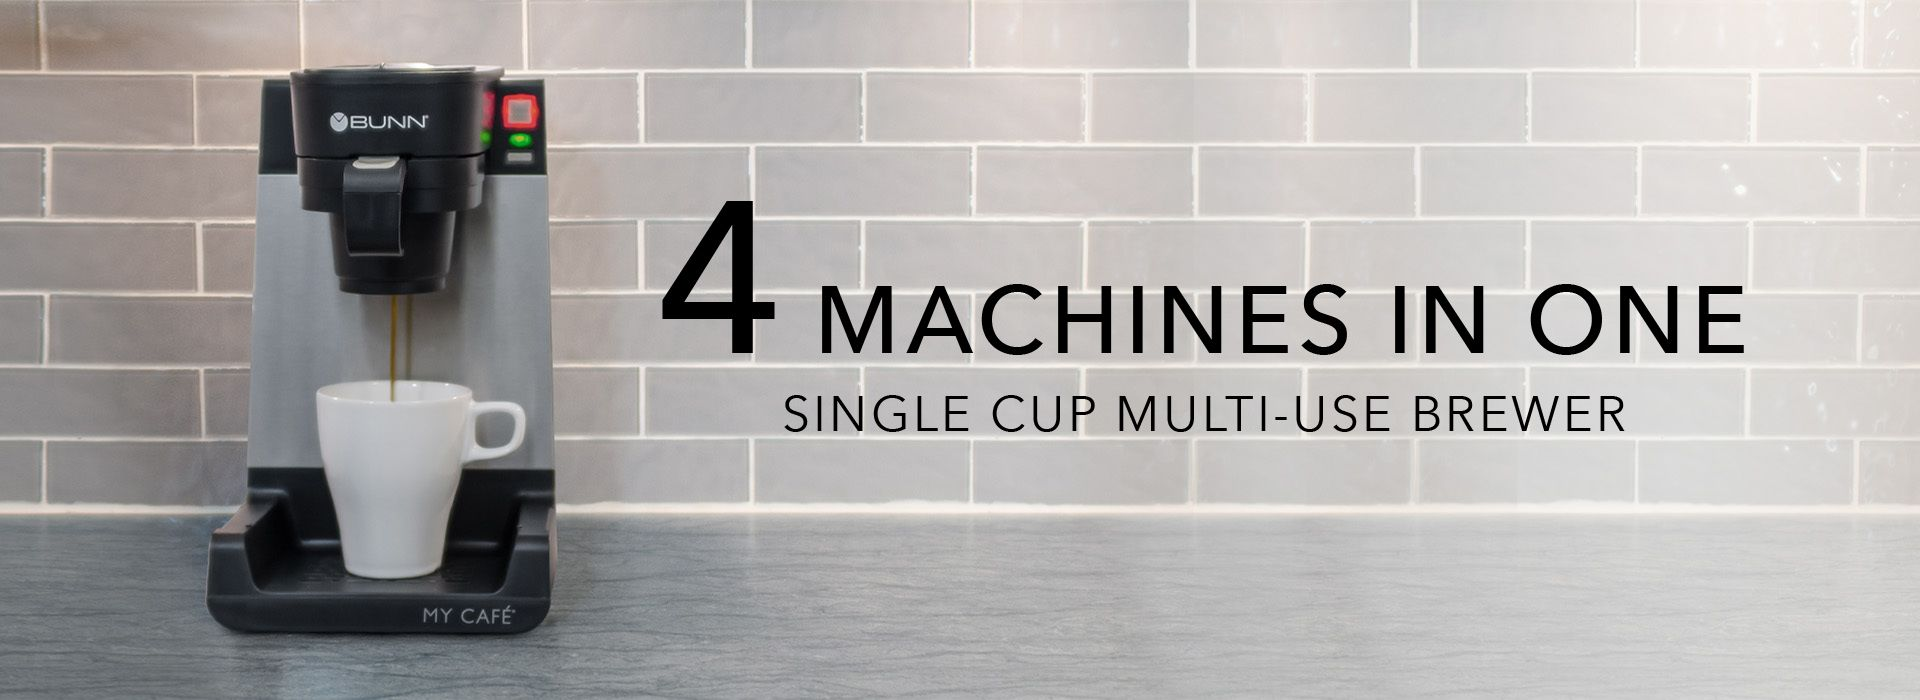 4 Machines in One - Single Cup Multi-Use Brewer